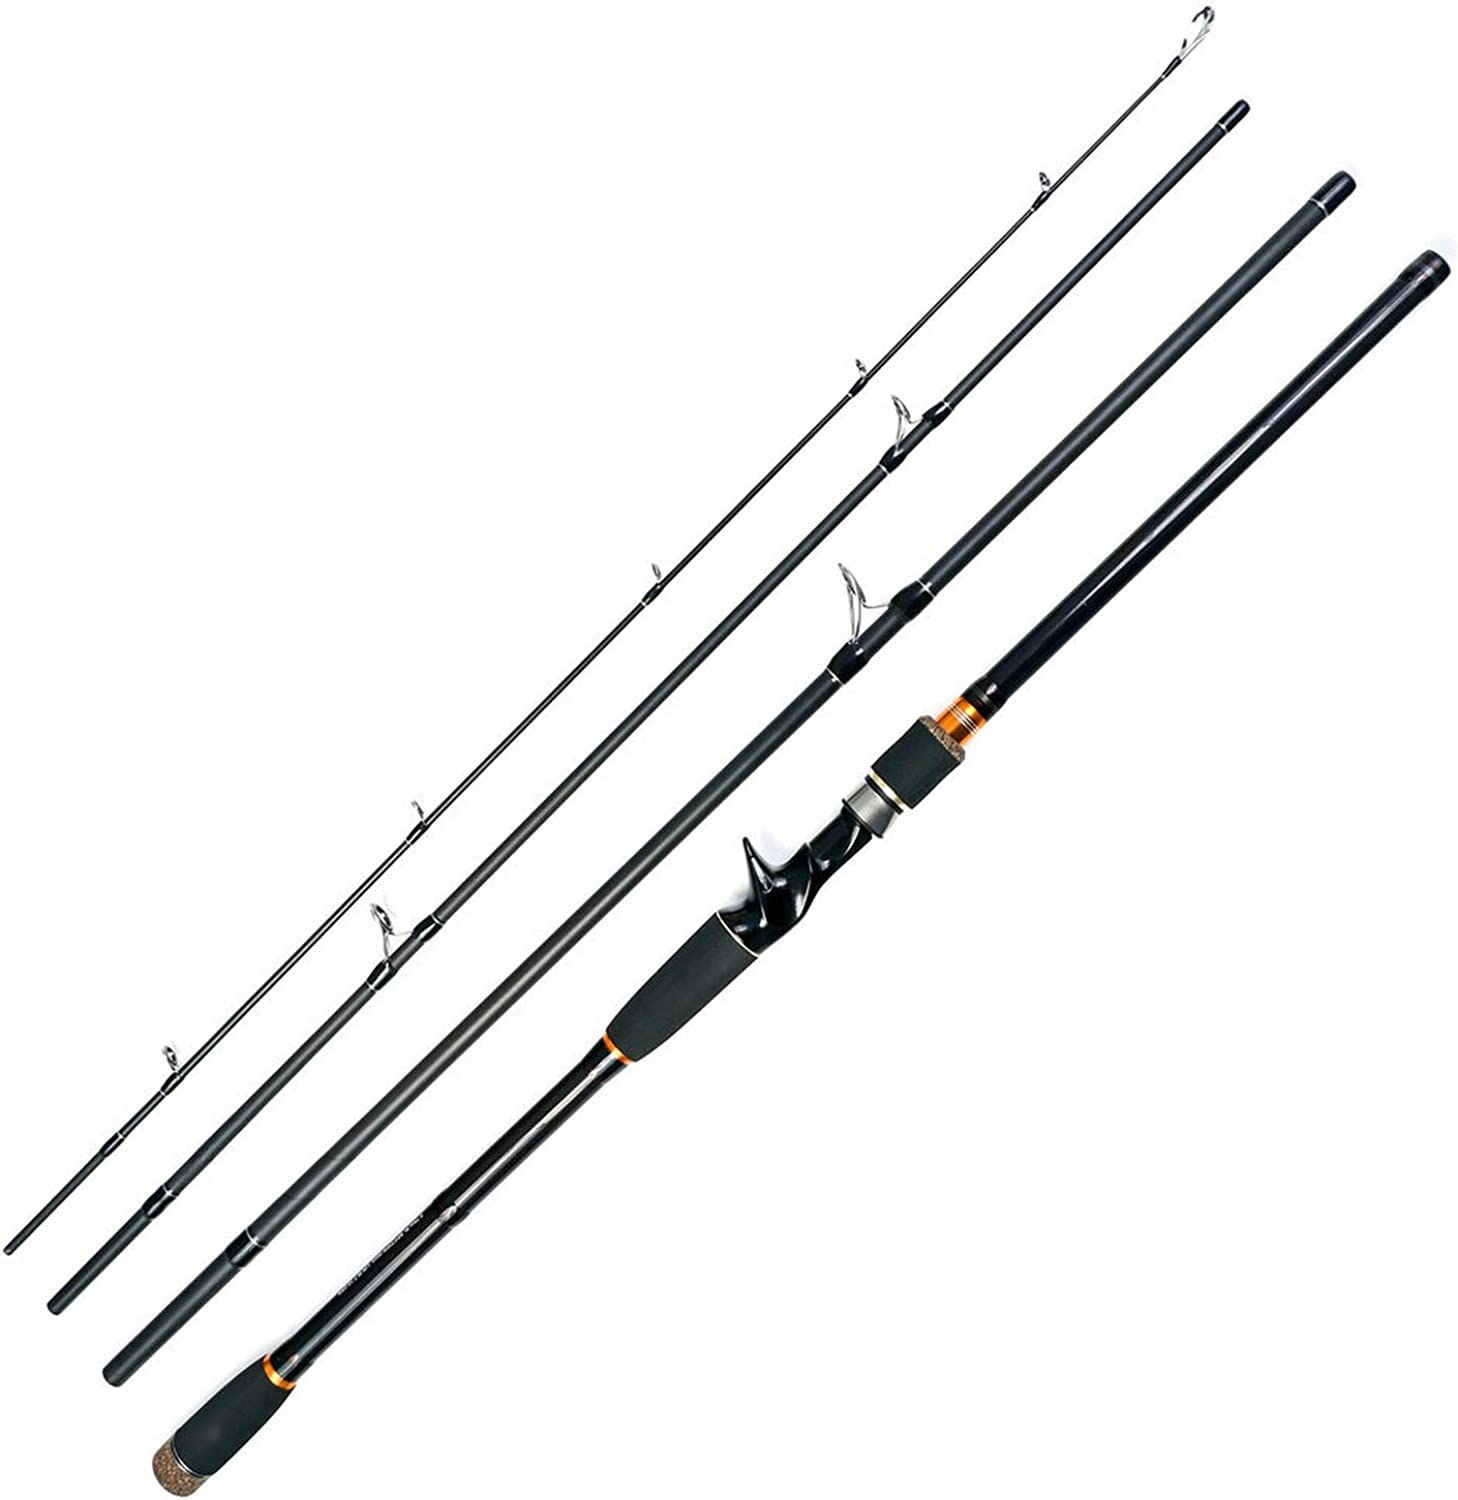 2.1 2.4 2.7M Rod 4 Section Carbon Spinning Fishing Rod Travel Rod Casting Fishing Pole Vava De Pesca Saltwater Rod Spinning